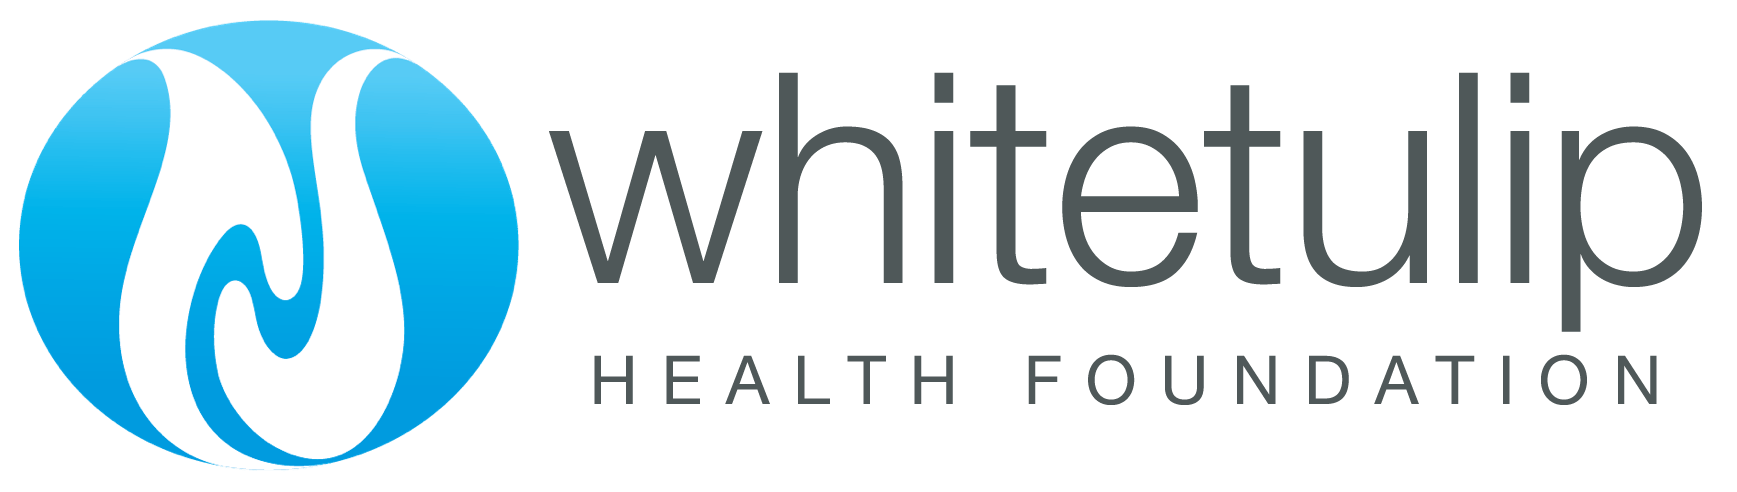 Whitetulip Health Foundation